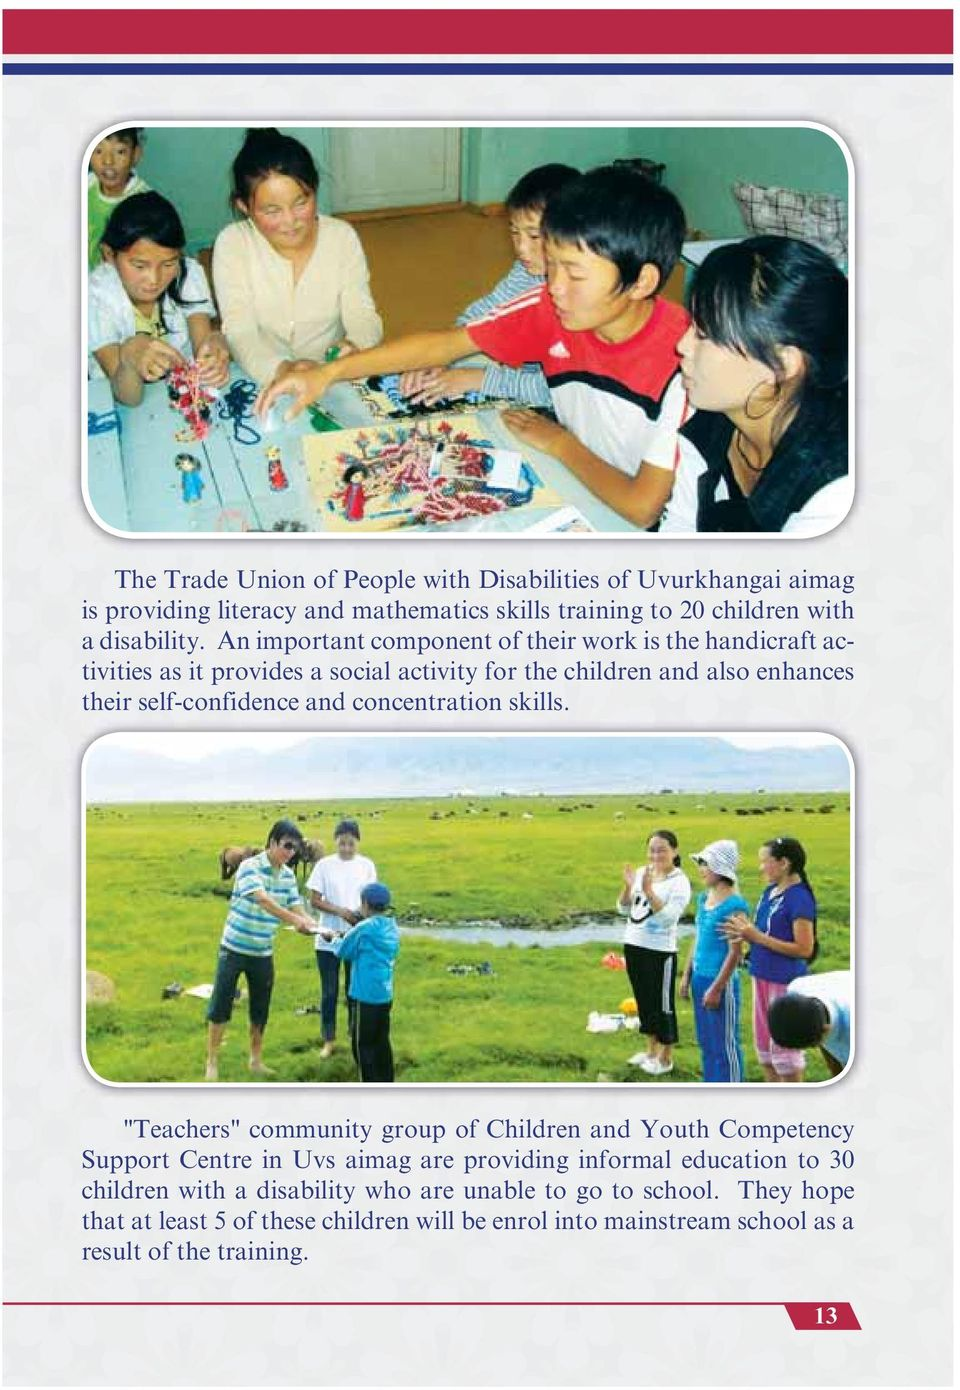 An important component of their work is the handicraft activities as it provides a social activity for the